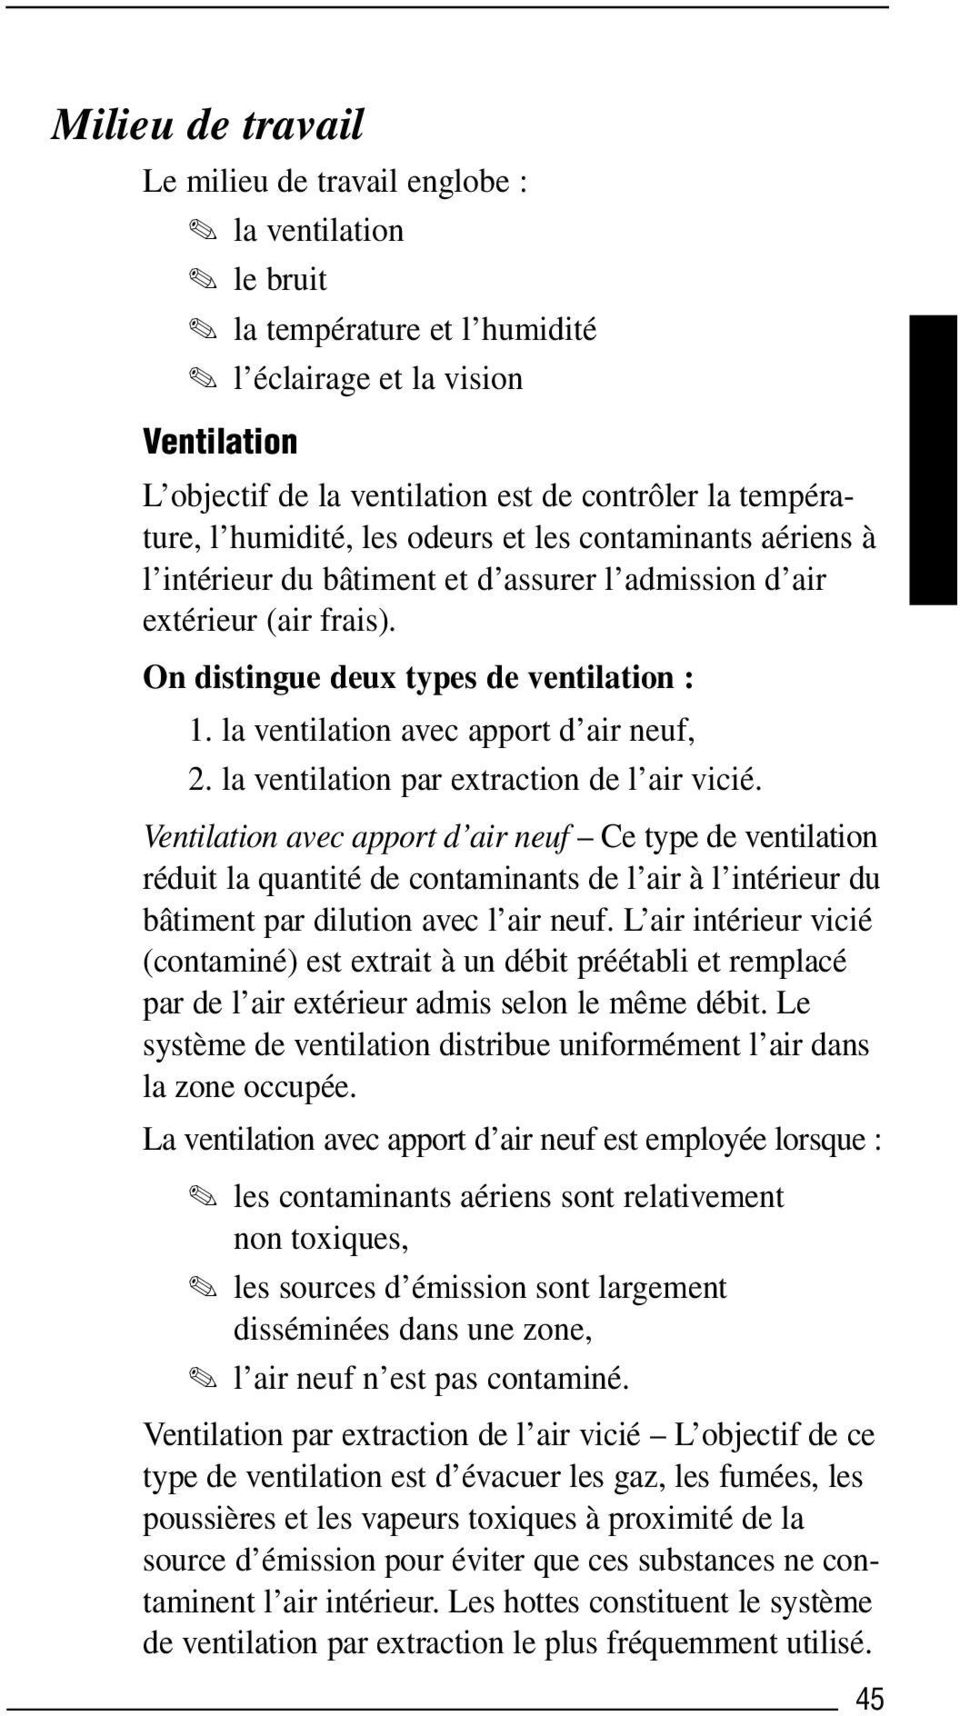 la ventilation avec apport d air neuf, 2. la ventilation par extraction de l air vicié.